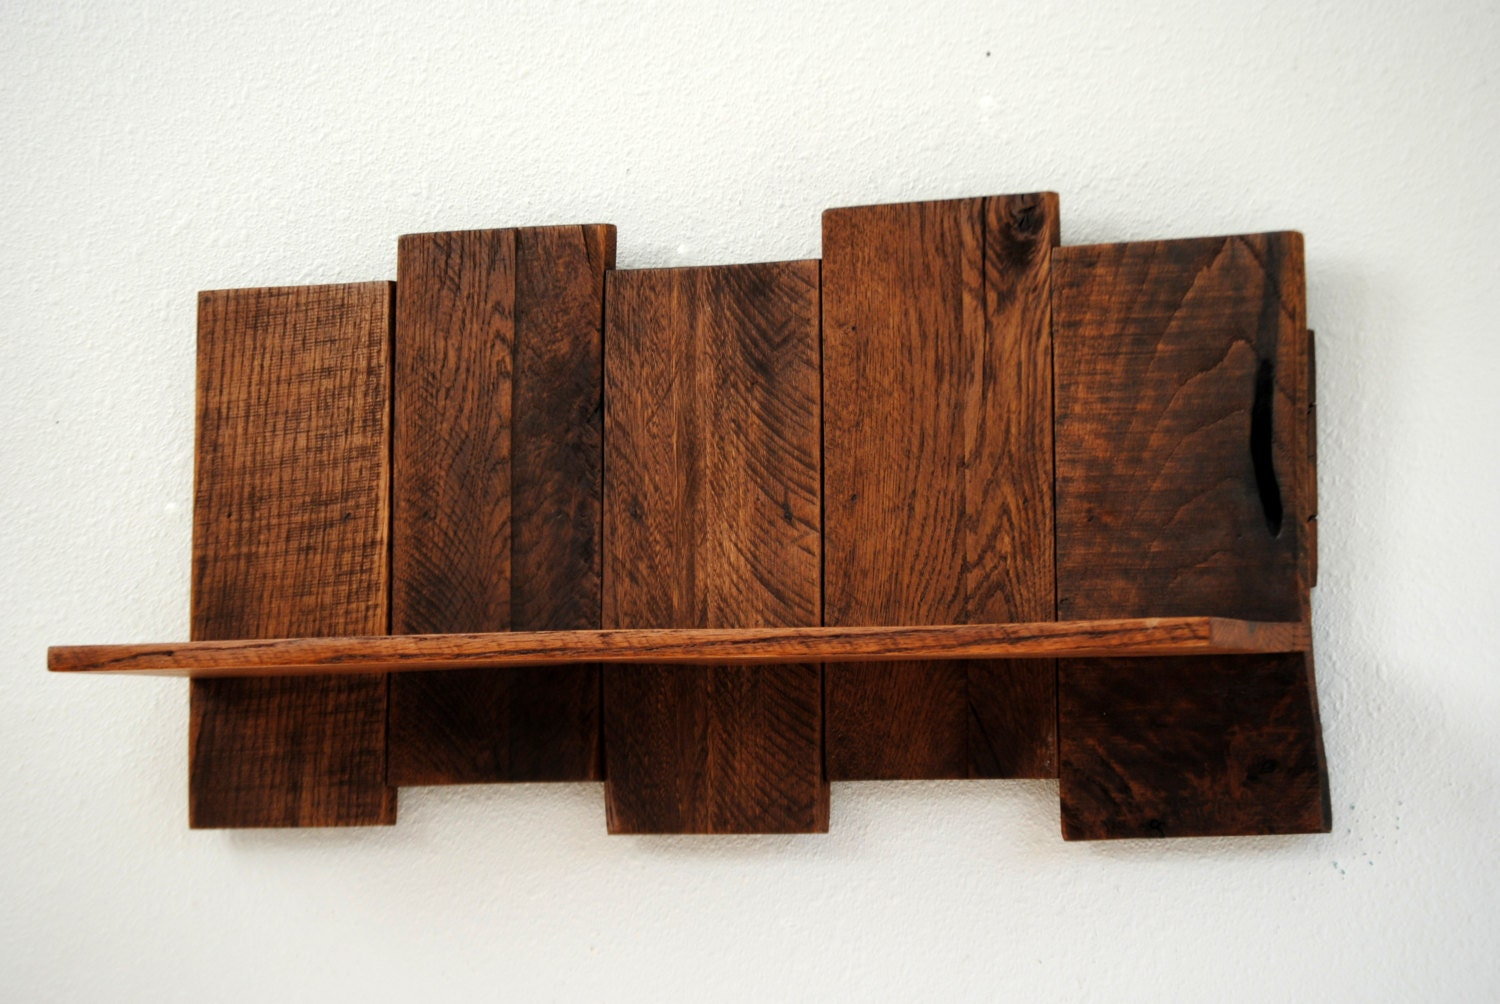 Wood Wall Shelves ~ Wooden shelf organizer display shelving unit